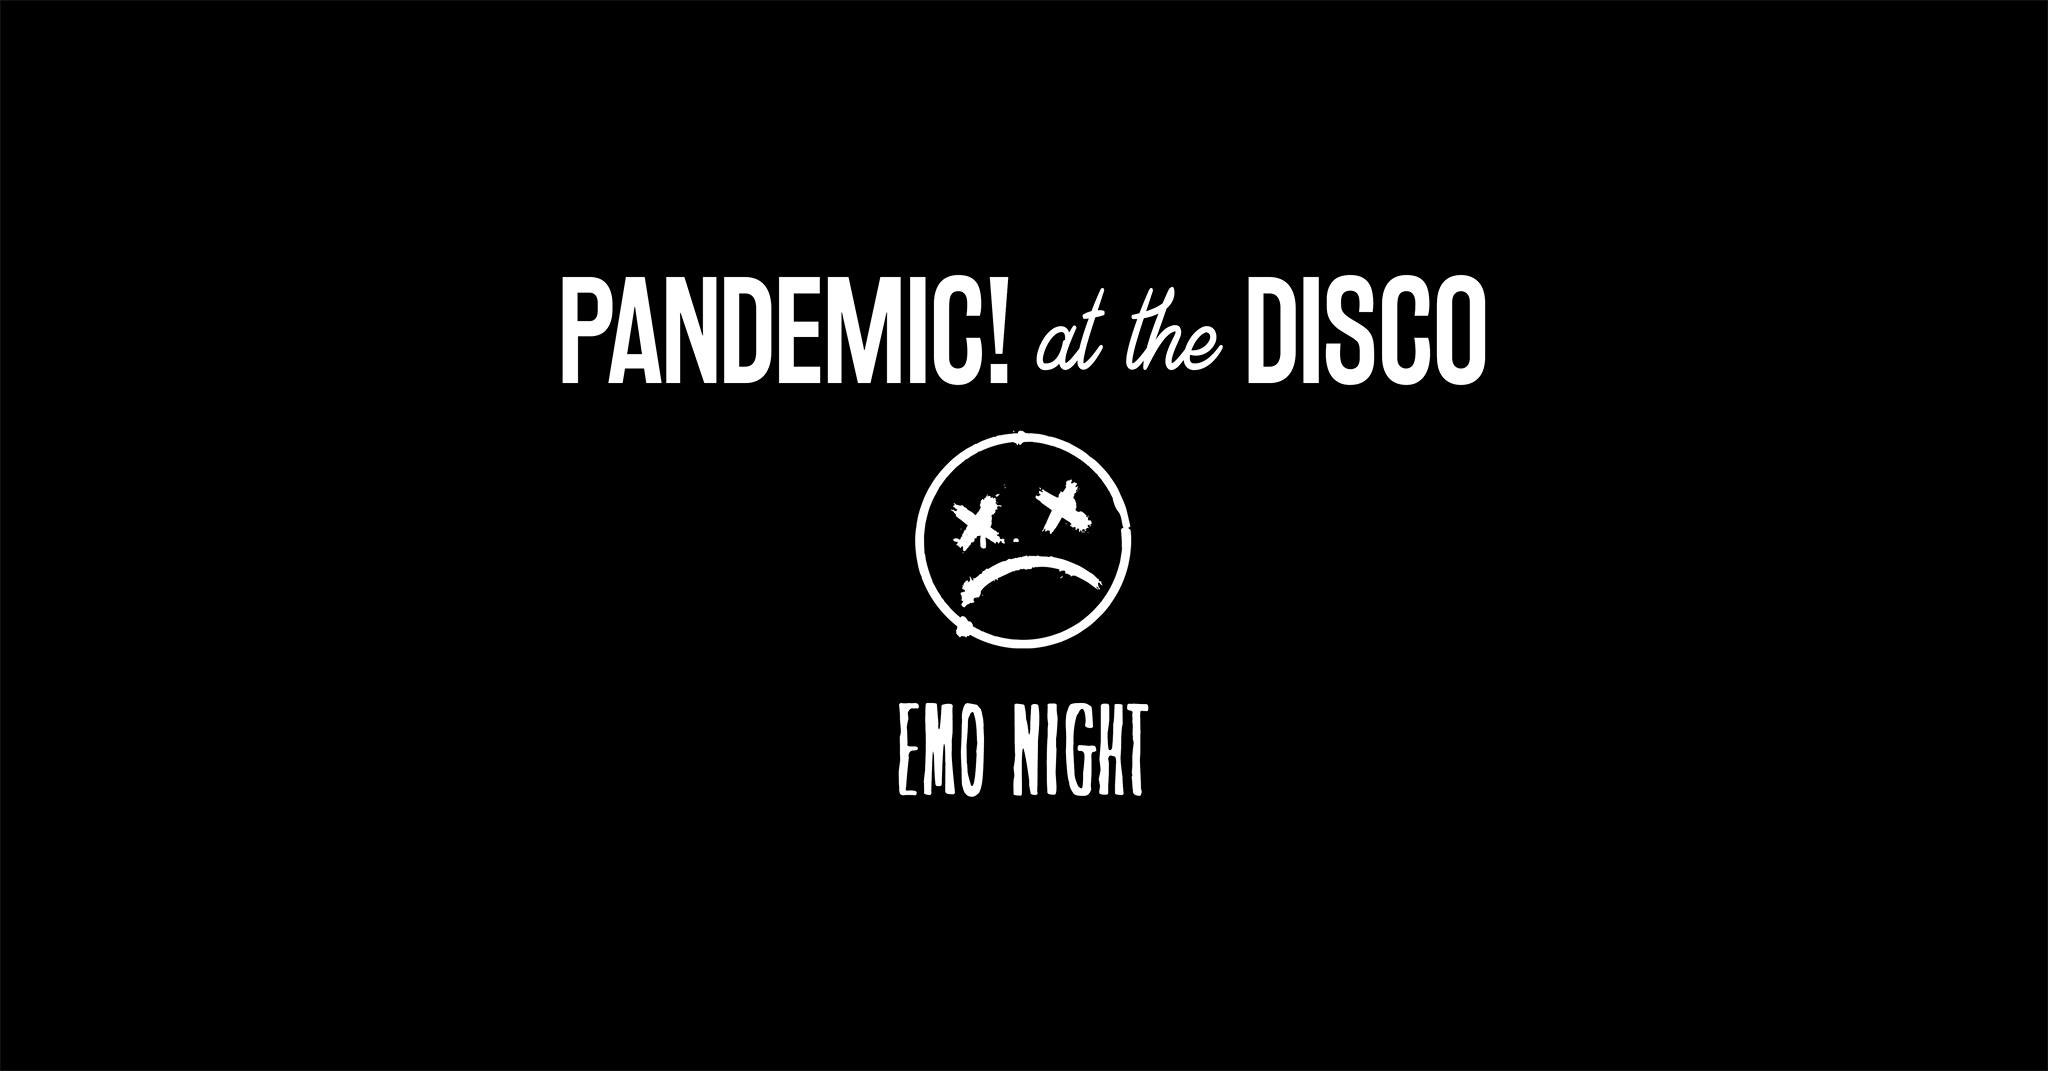 Pandemic At the Disco